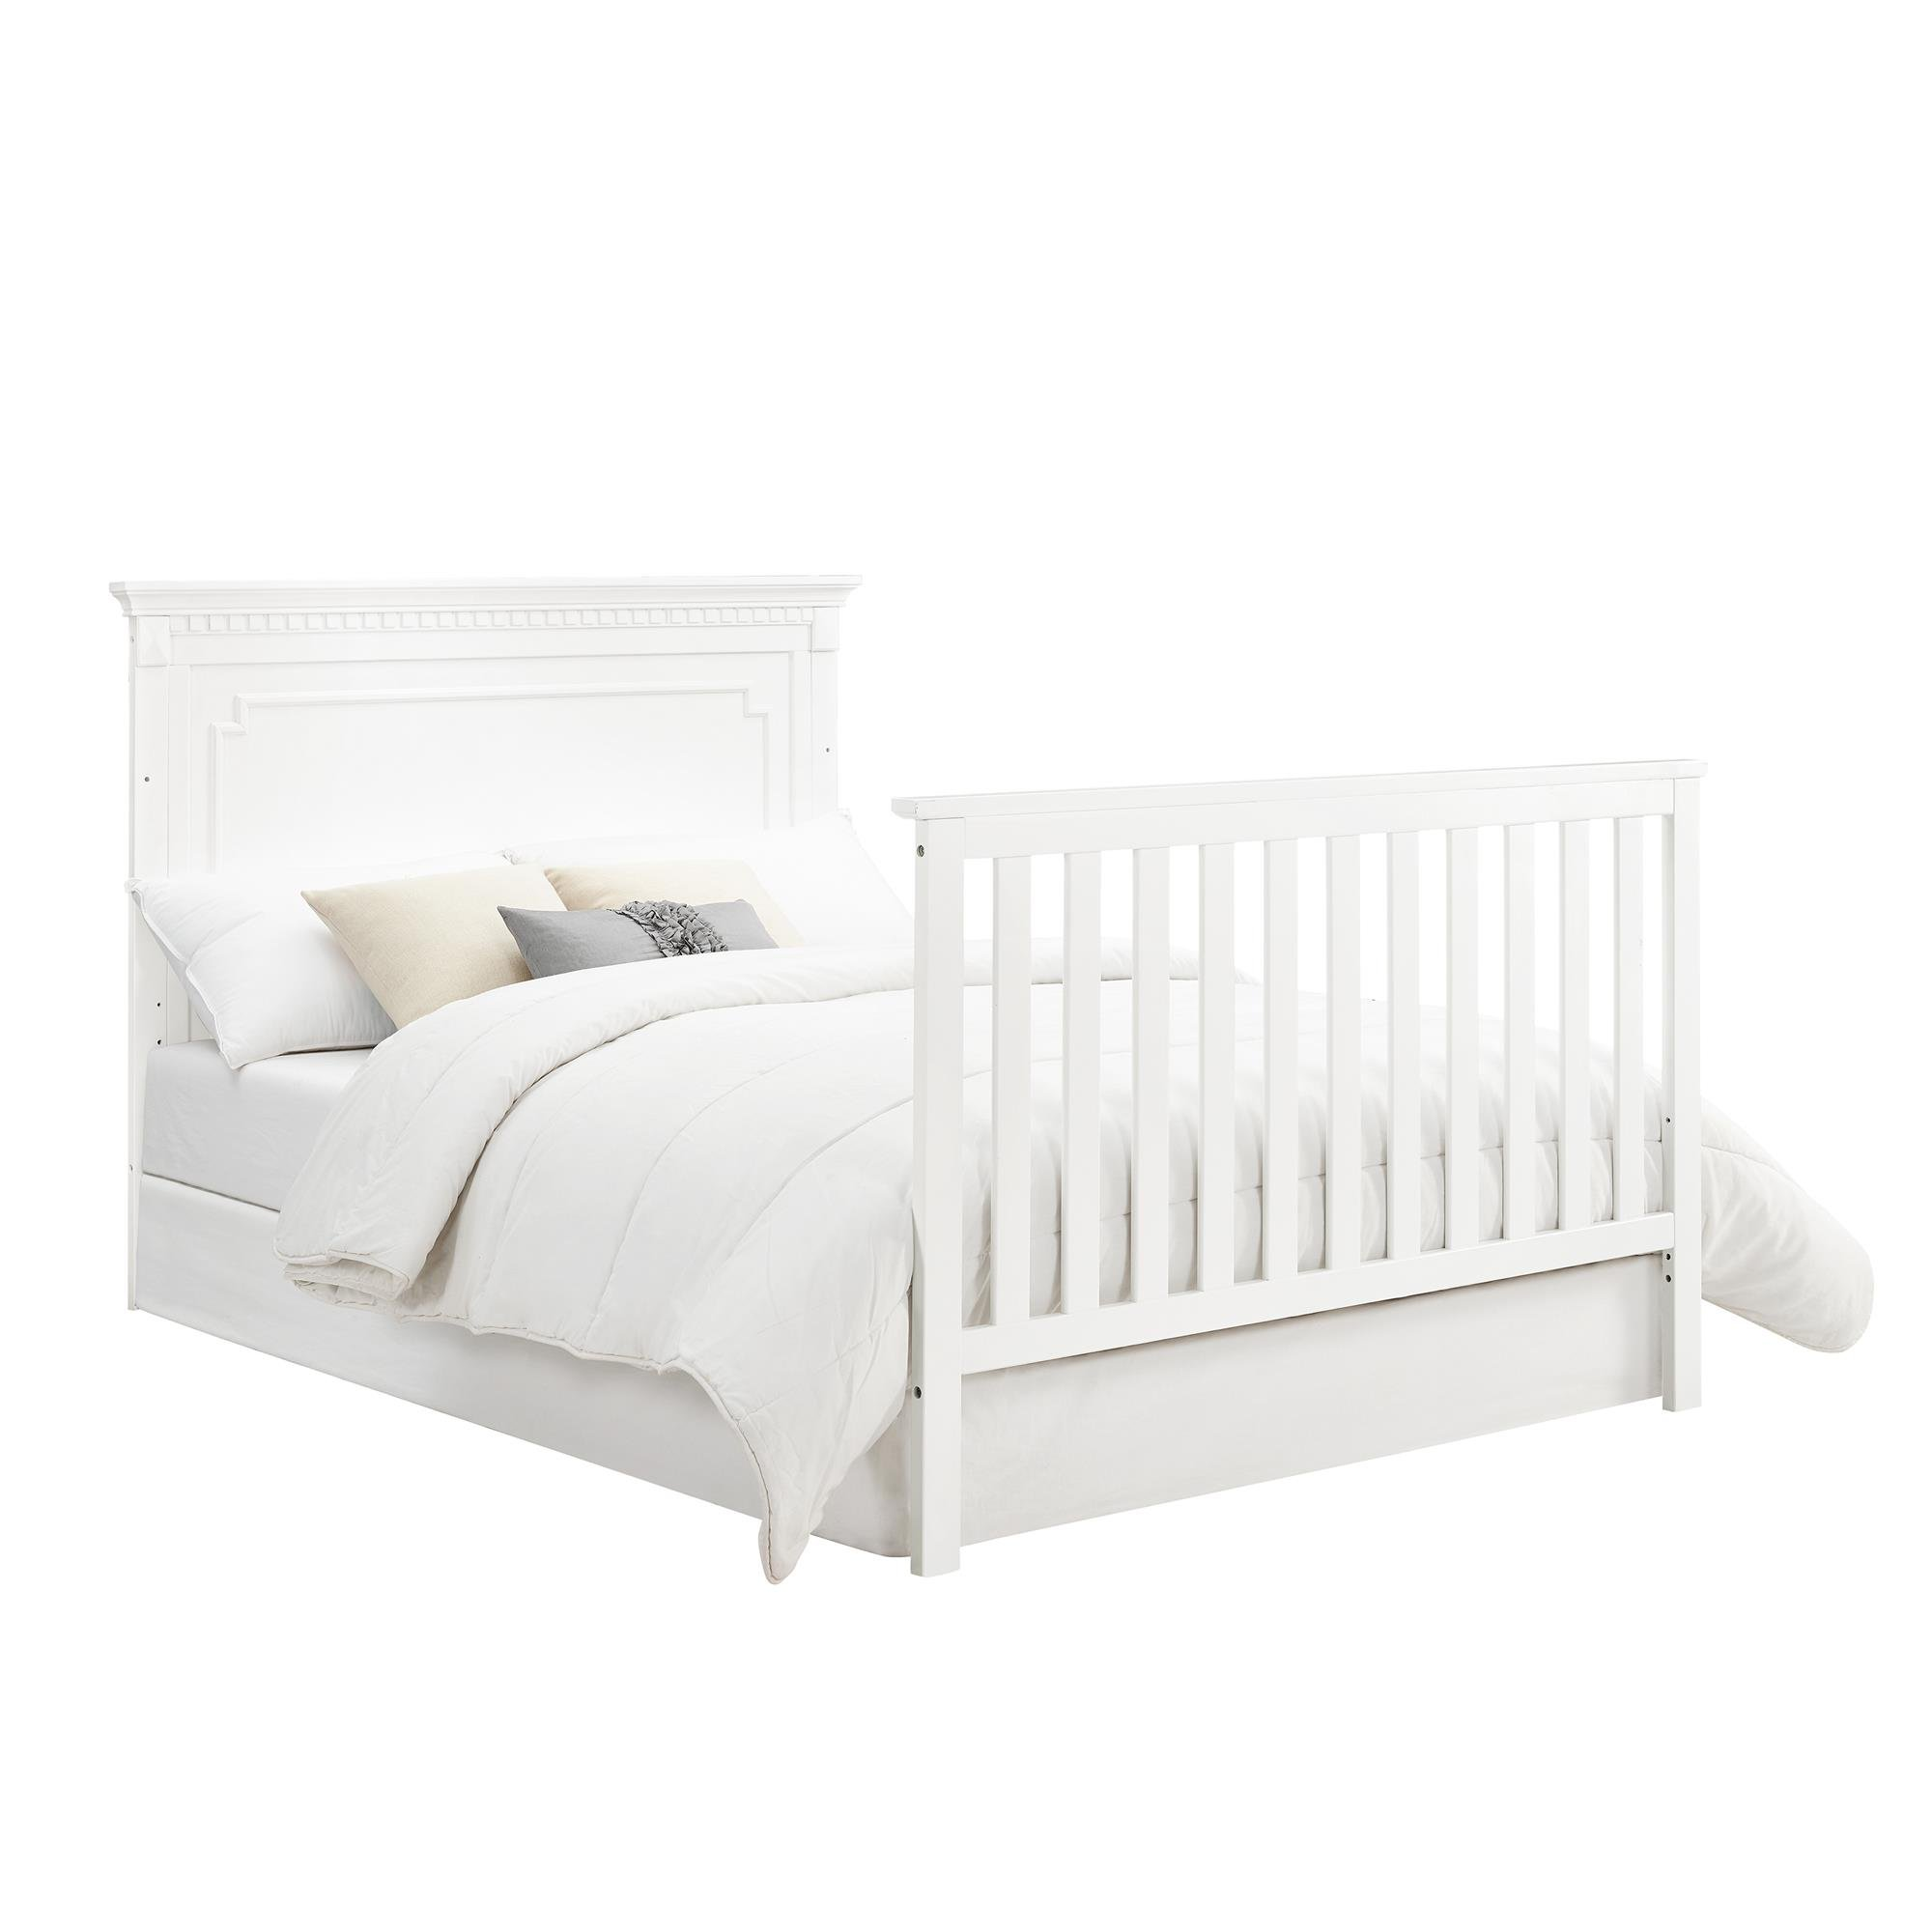 Full Size Conversion Kit Bed Rails for Baby Relax Edgemont, Miles & Rivers Cribs by Dorel Living - White by CC KITS (Image #2)